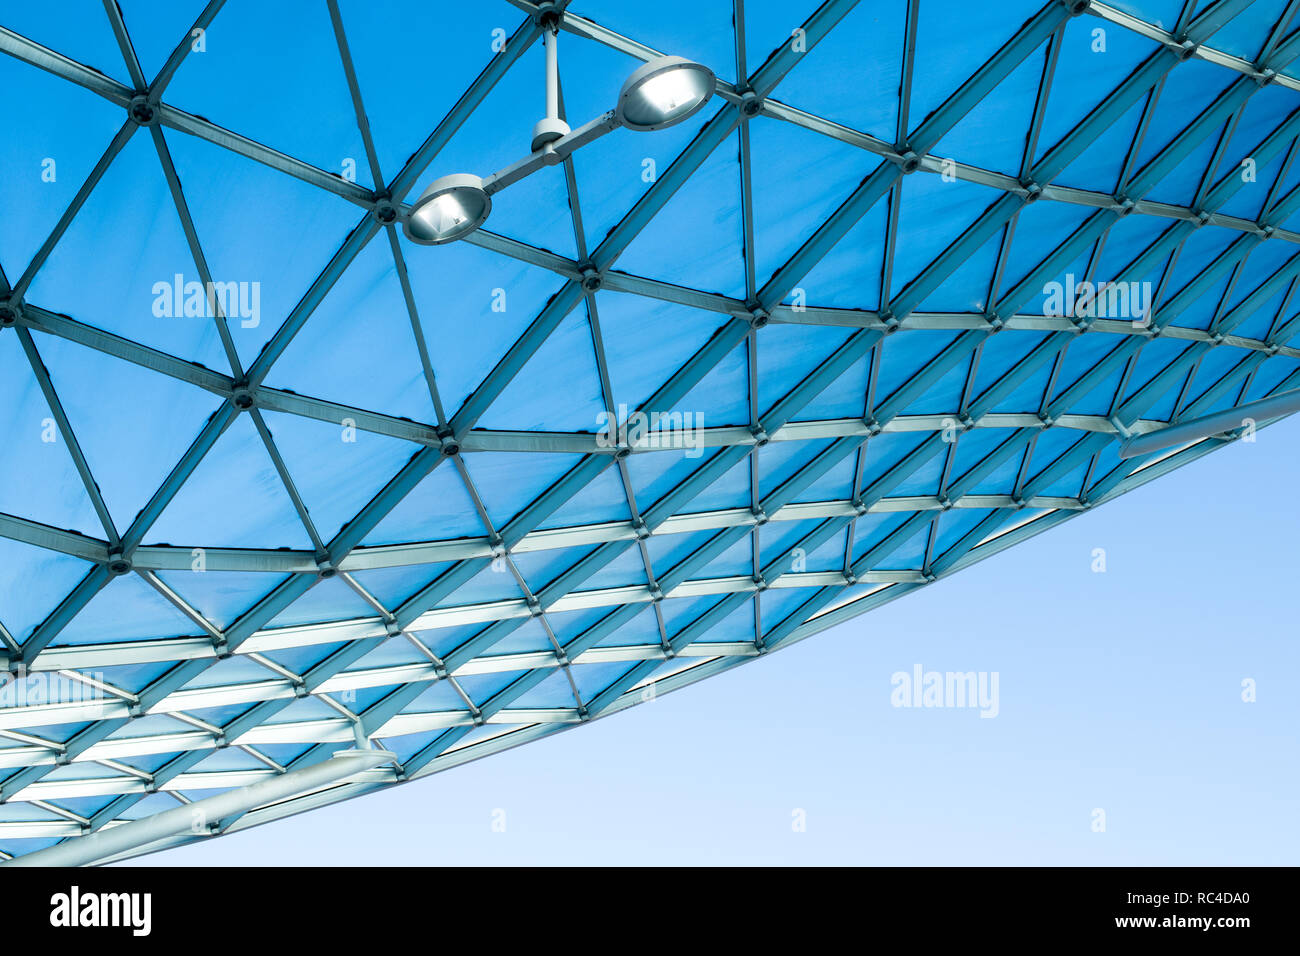 Modern architecture glass roof with curved design of steel structure. Low angle view with blue sky, indoor lighting and white wall of the building - Stock Image